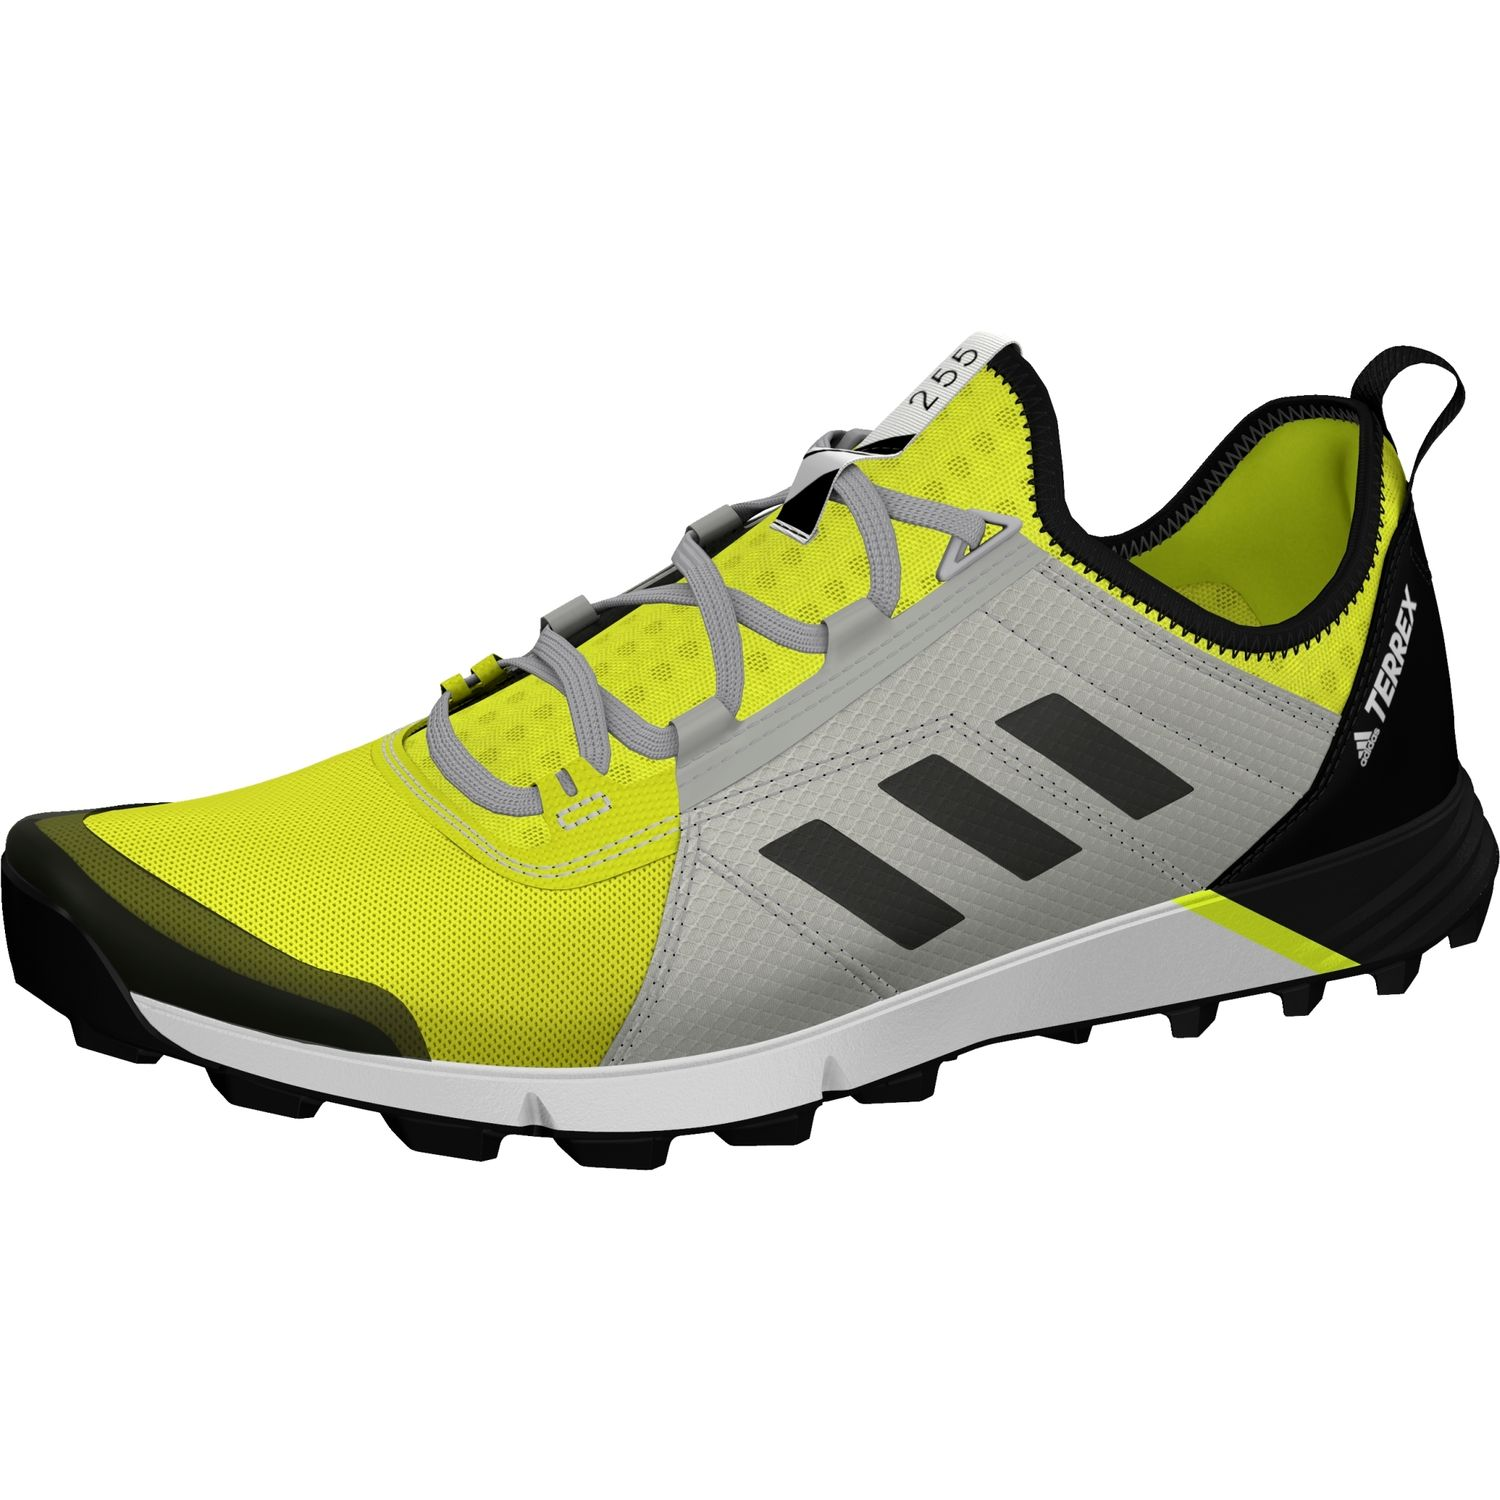 Details about Adidas Terrex Agravic Speed Shoes Mens Outdoor Shoes s80863 show original title